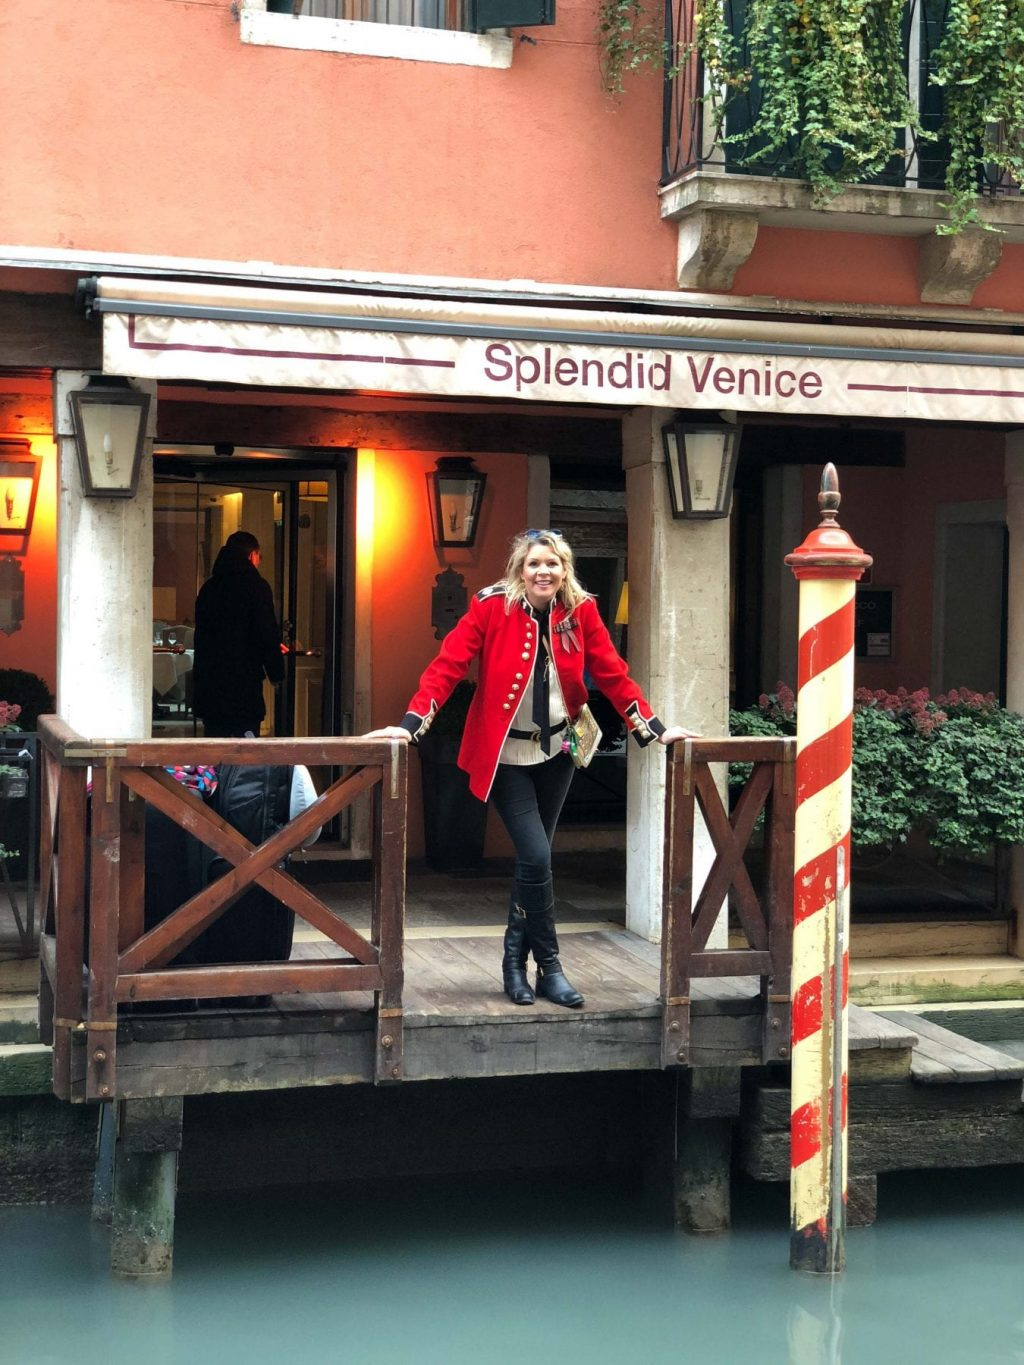 Splendid Hotel Best Hotel Venice Italy, Float To The Front Door of an Absolutely Splendid & The Best Hotel in the Heart of Venice, Italy